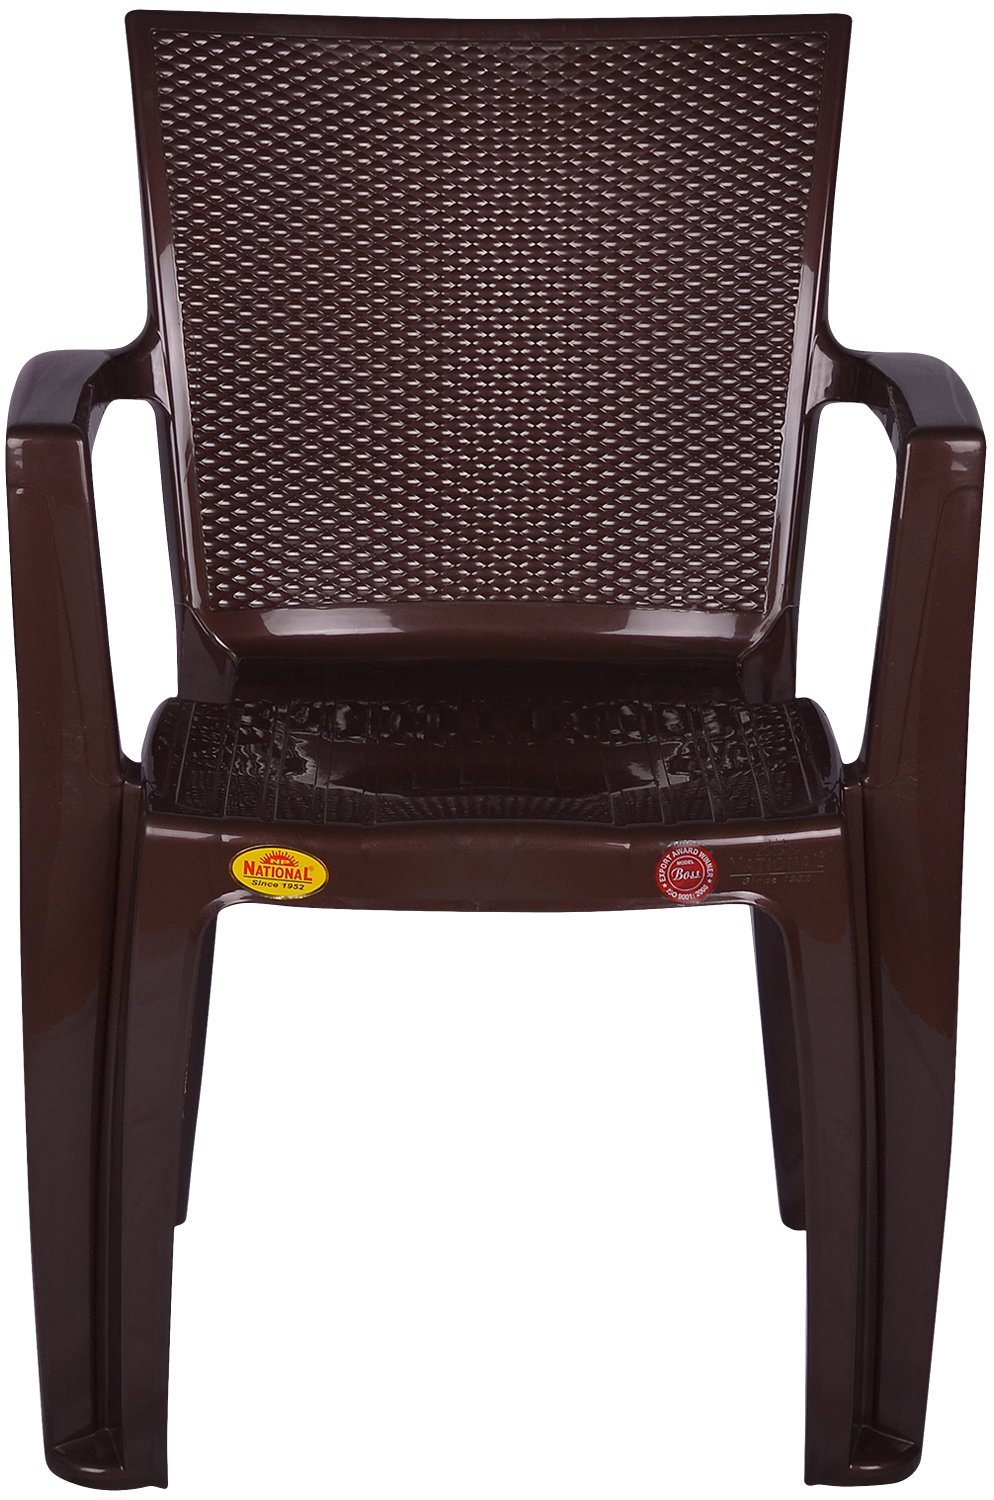 National Plastics Industries Ebboss01 Chair Brown Amazon In Home